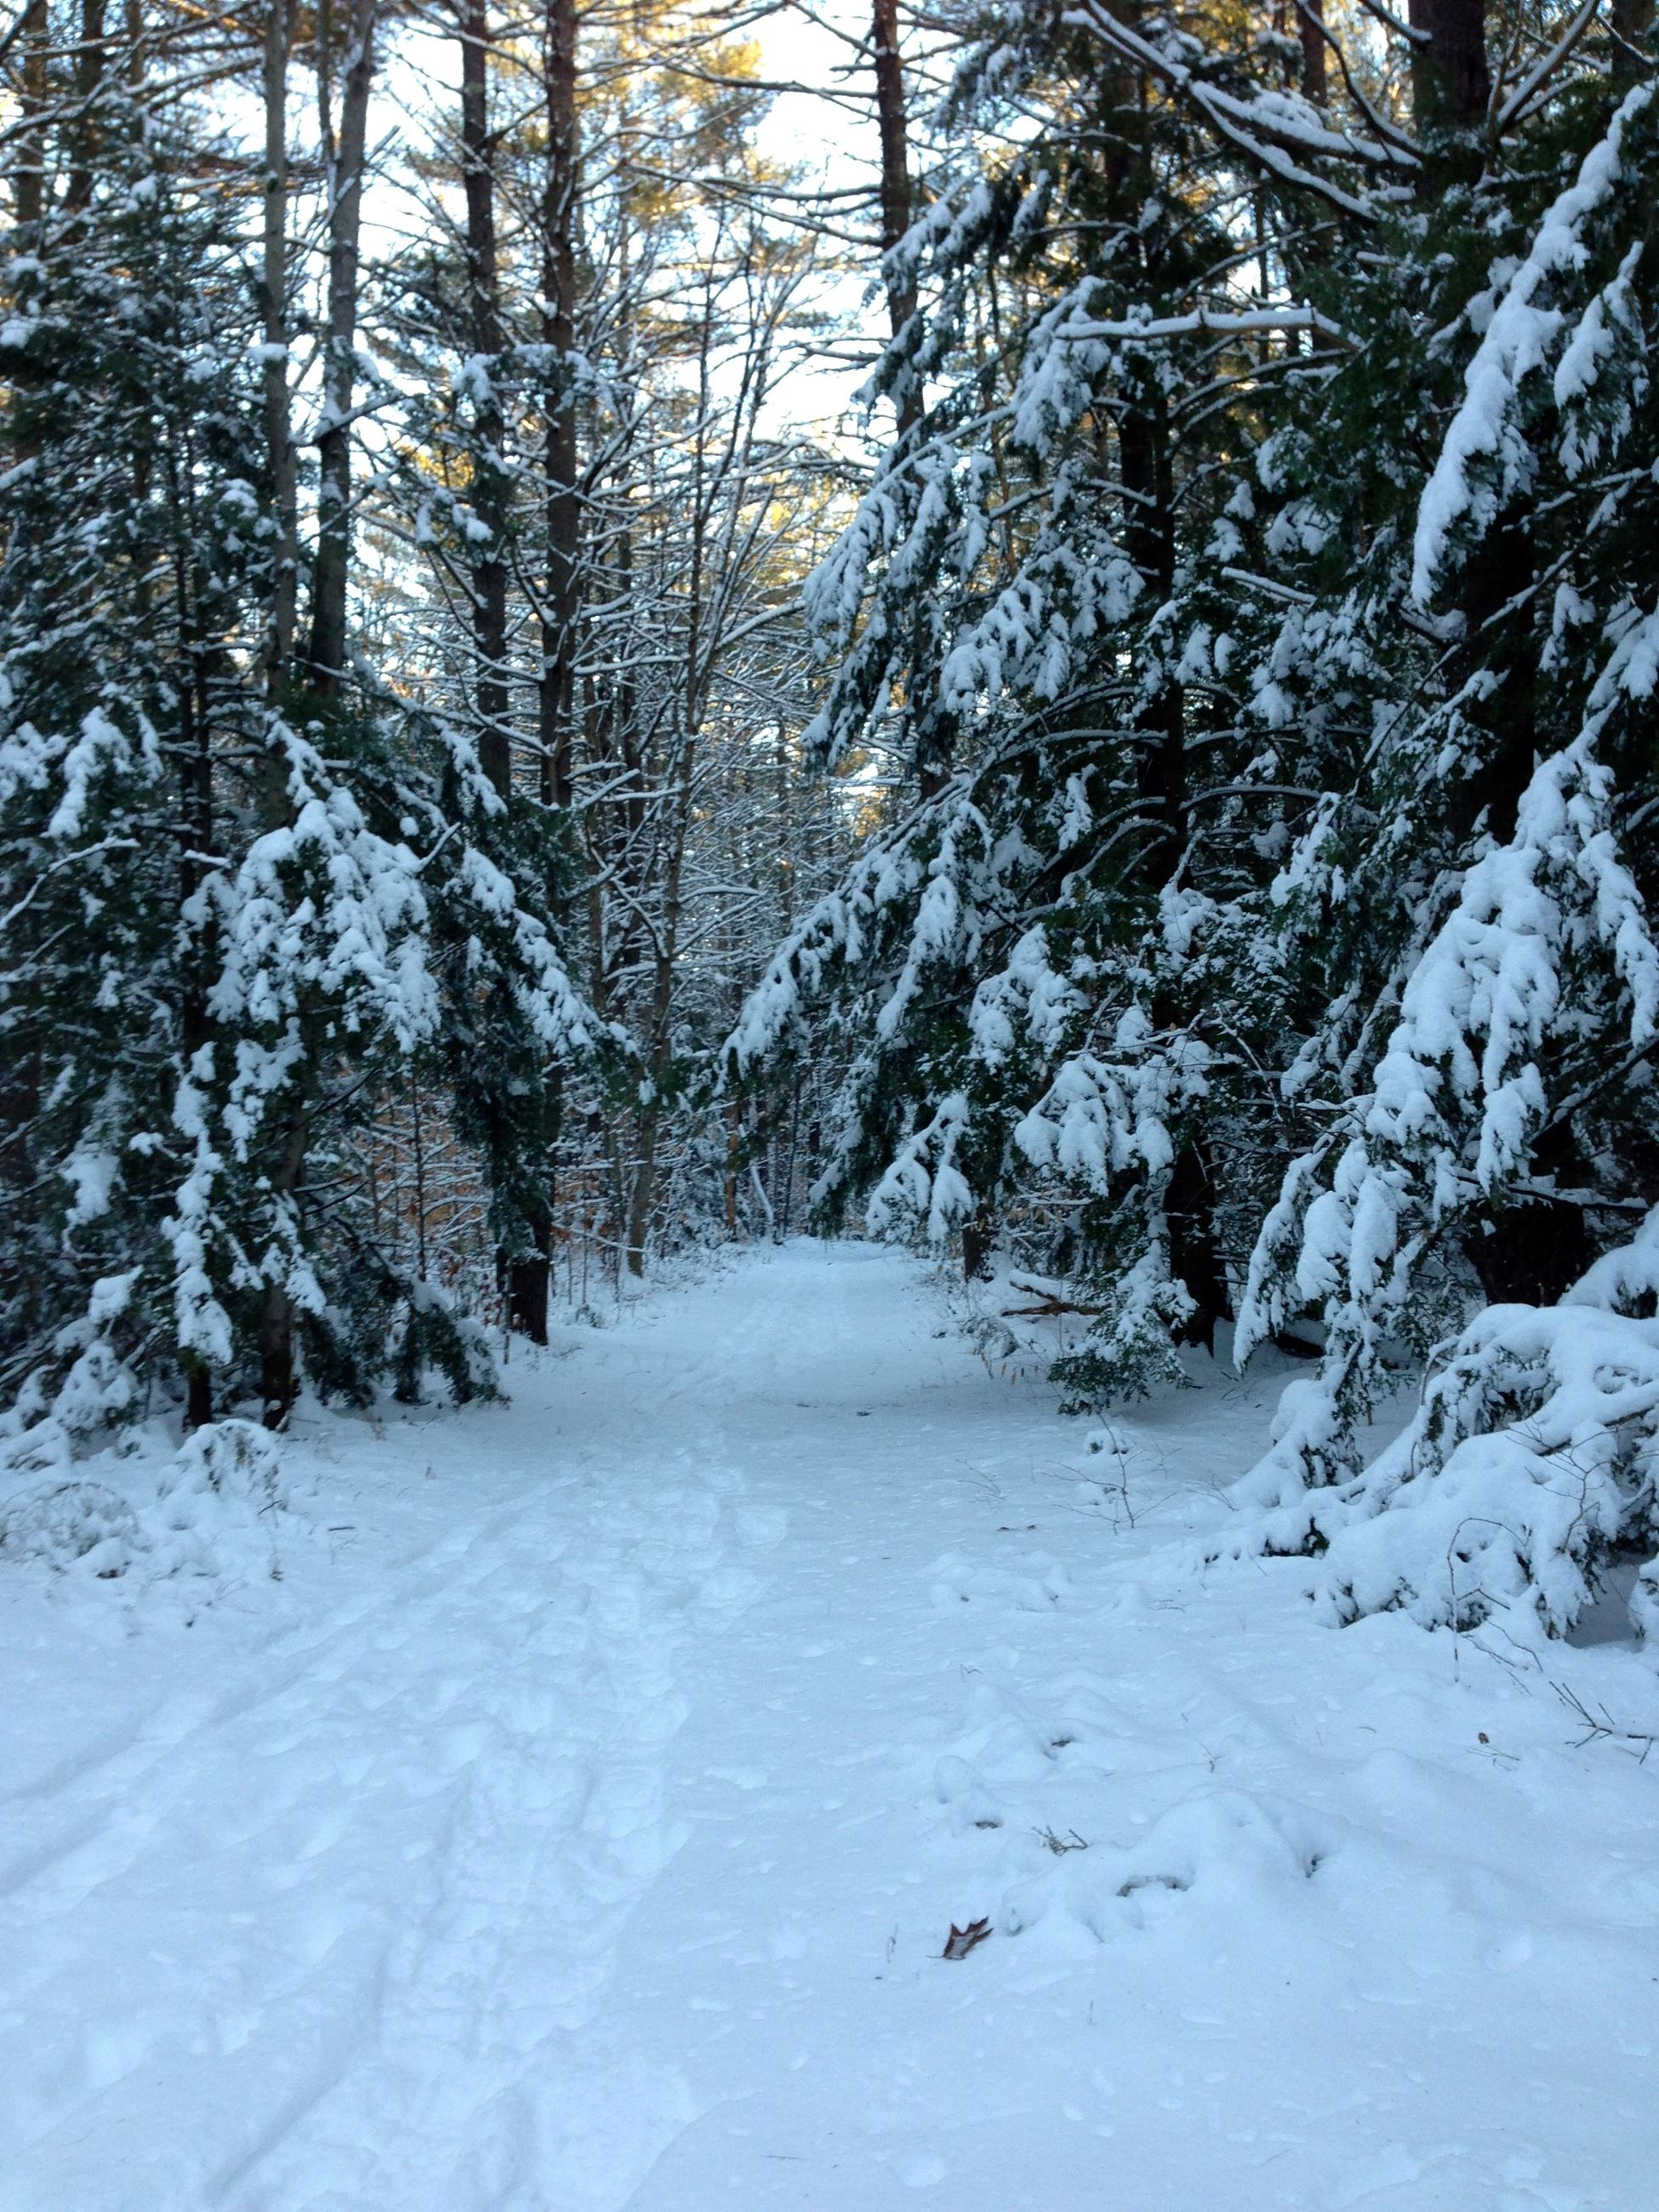 Snow covered trail through the forest, with snow-covered pine trees on either side.